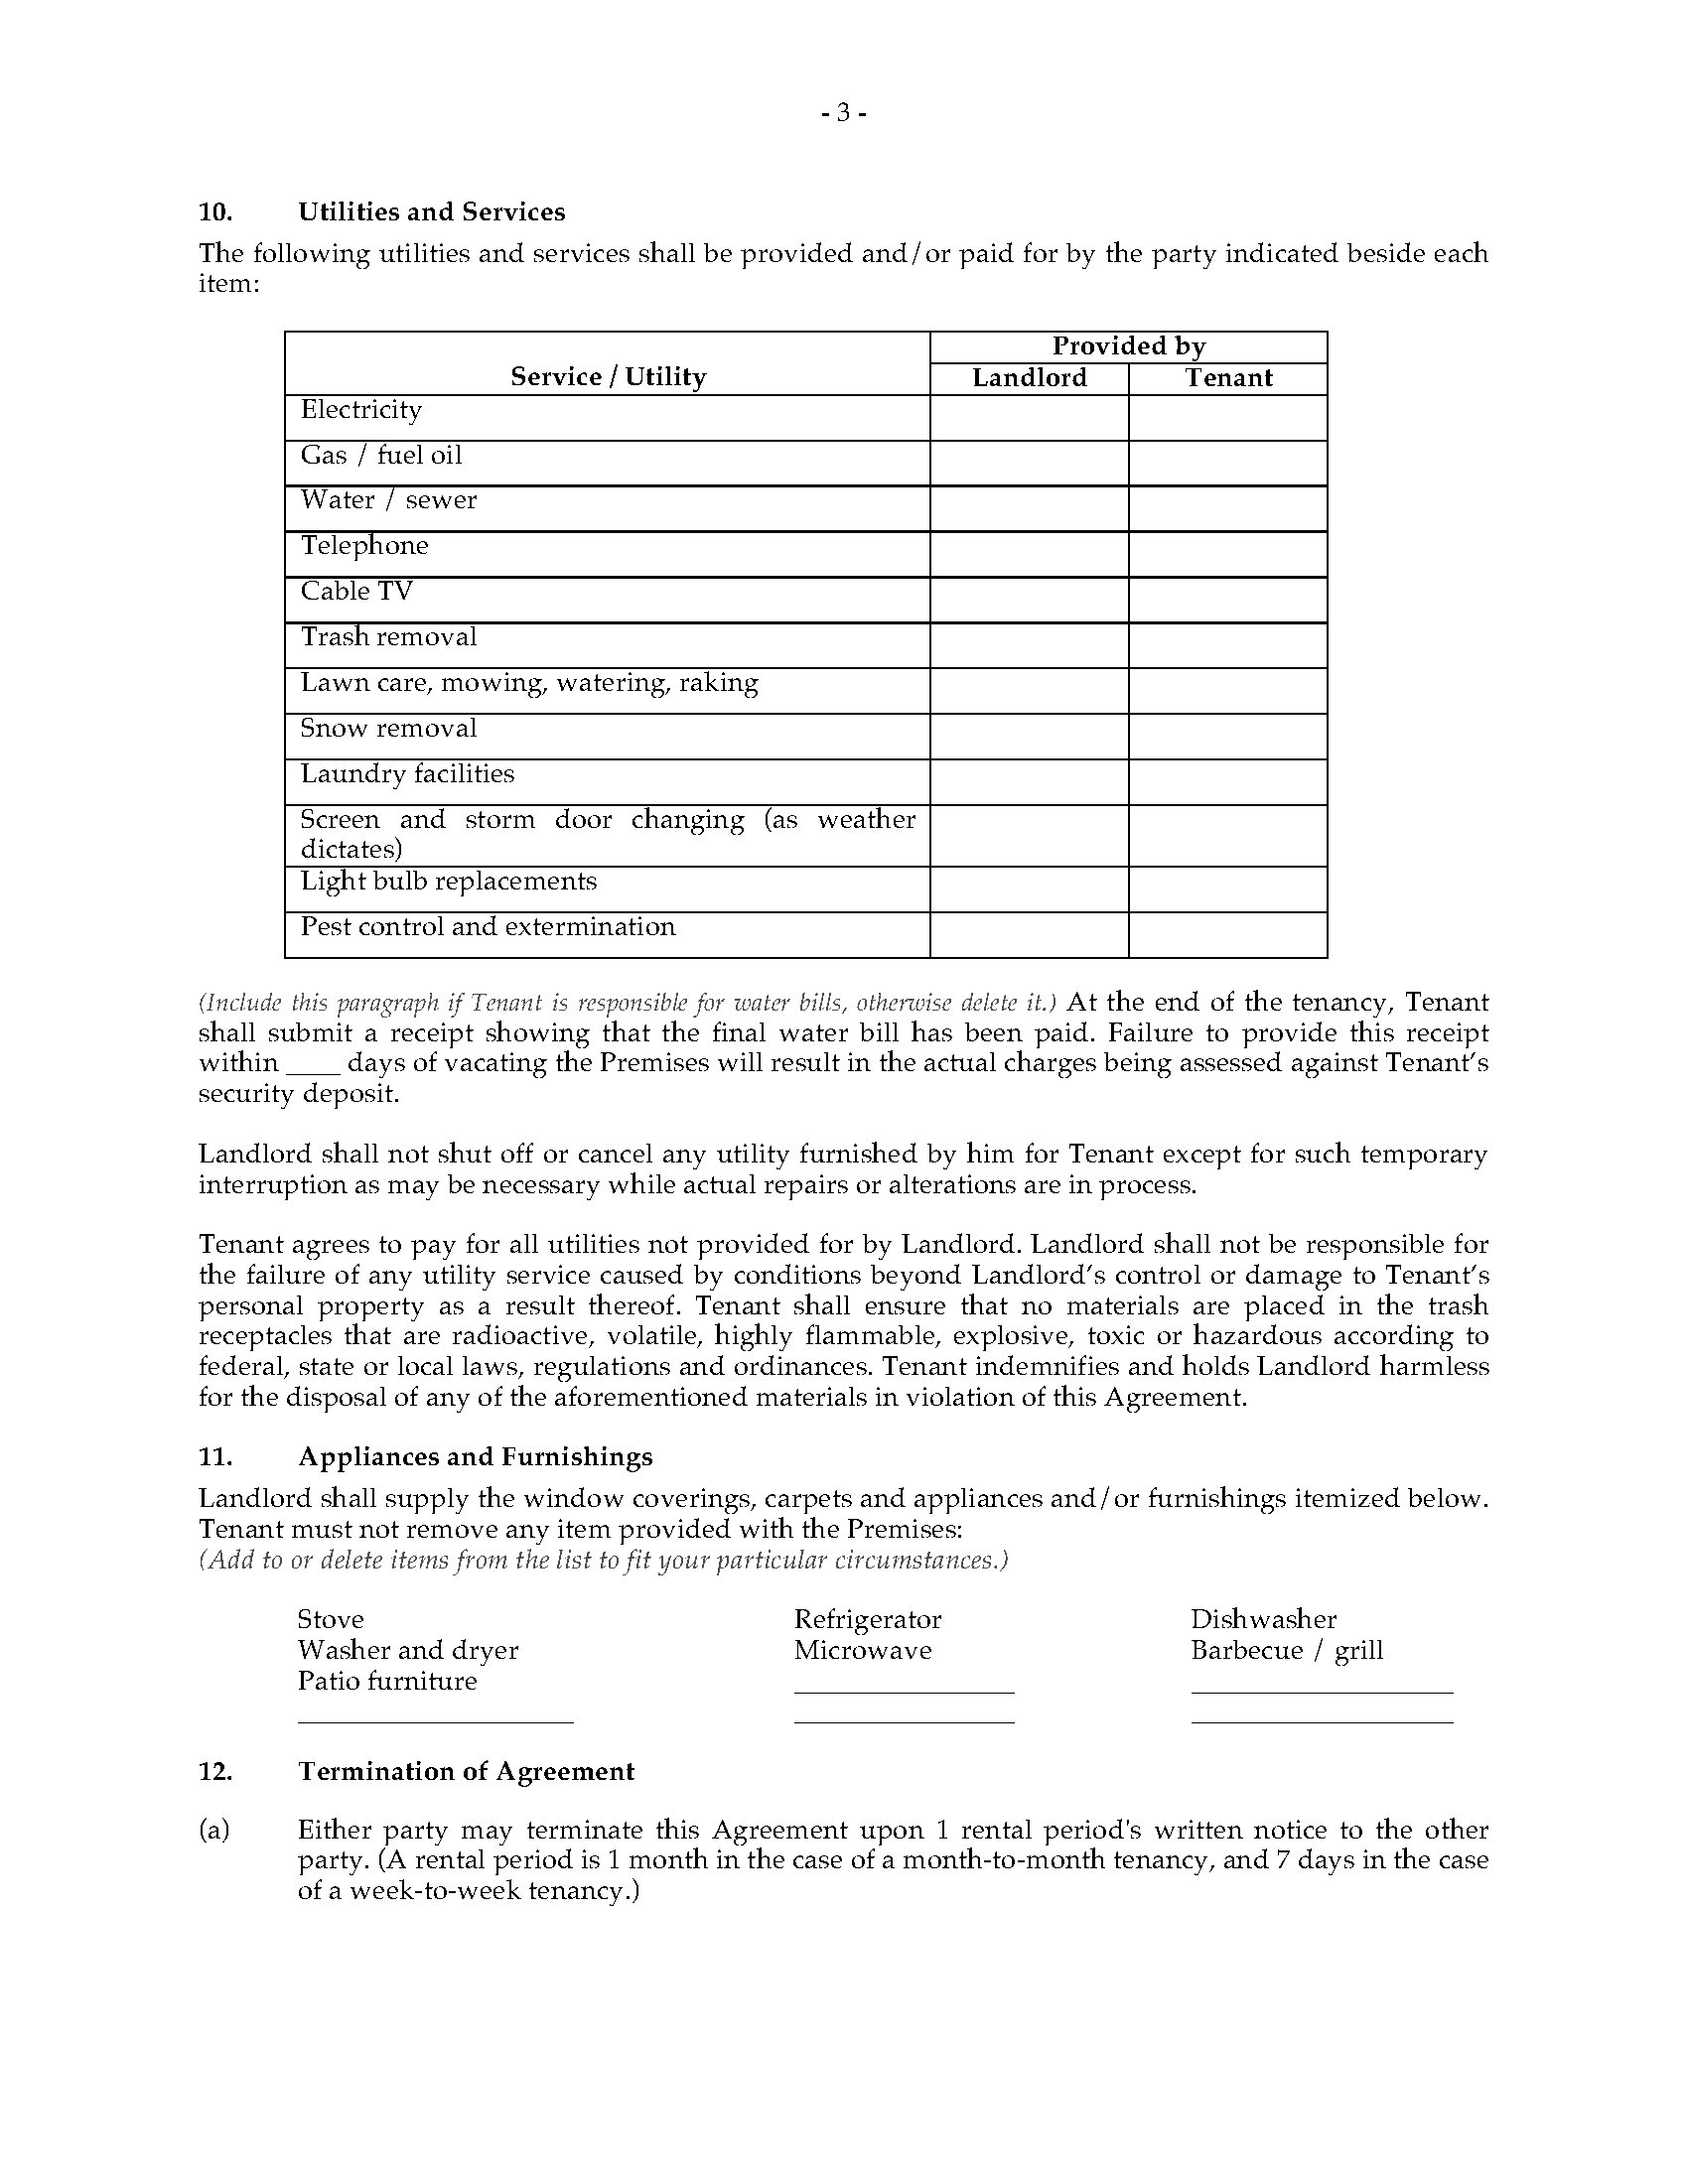 Michigan Rental Agreement Monthly Or Weekly Legal Forms And Business Templates